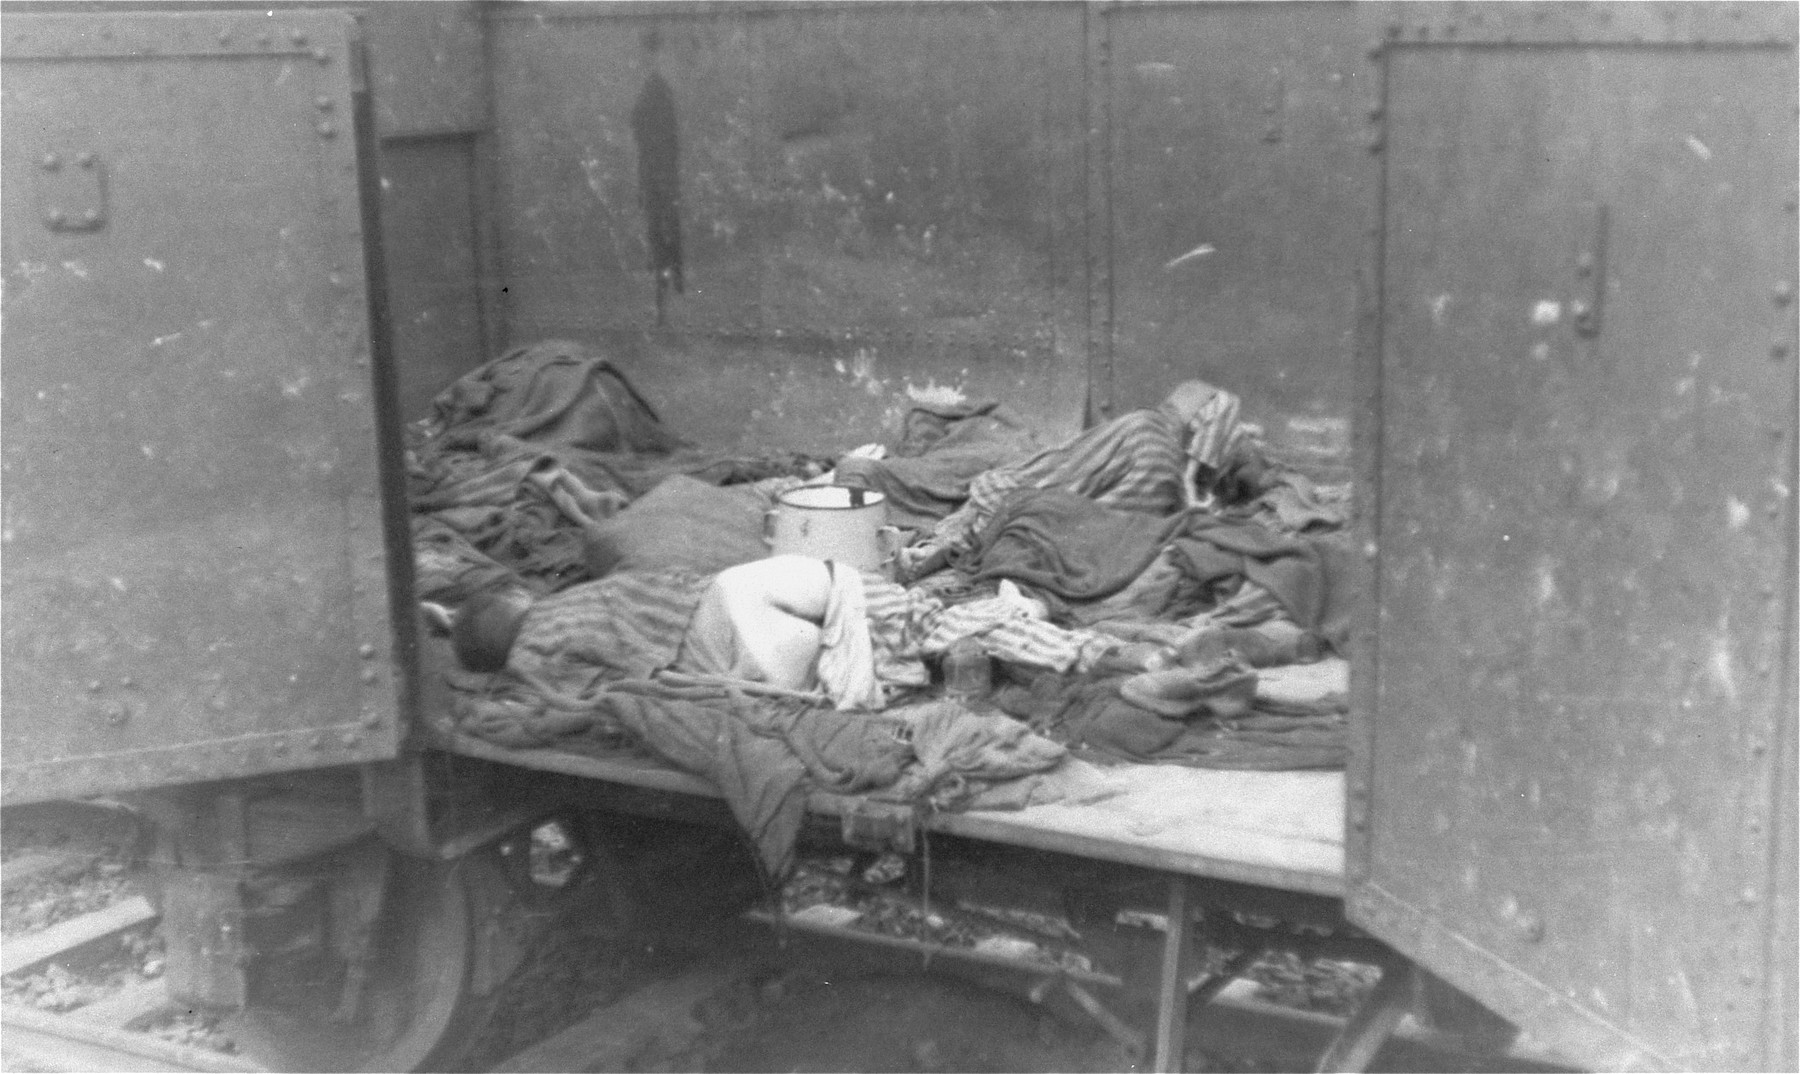 Corpses lie in one of the open railcars of the Dachau death train.